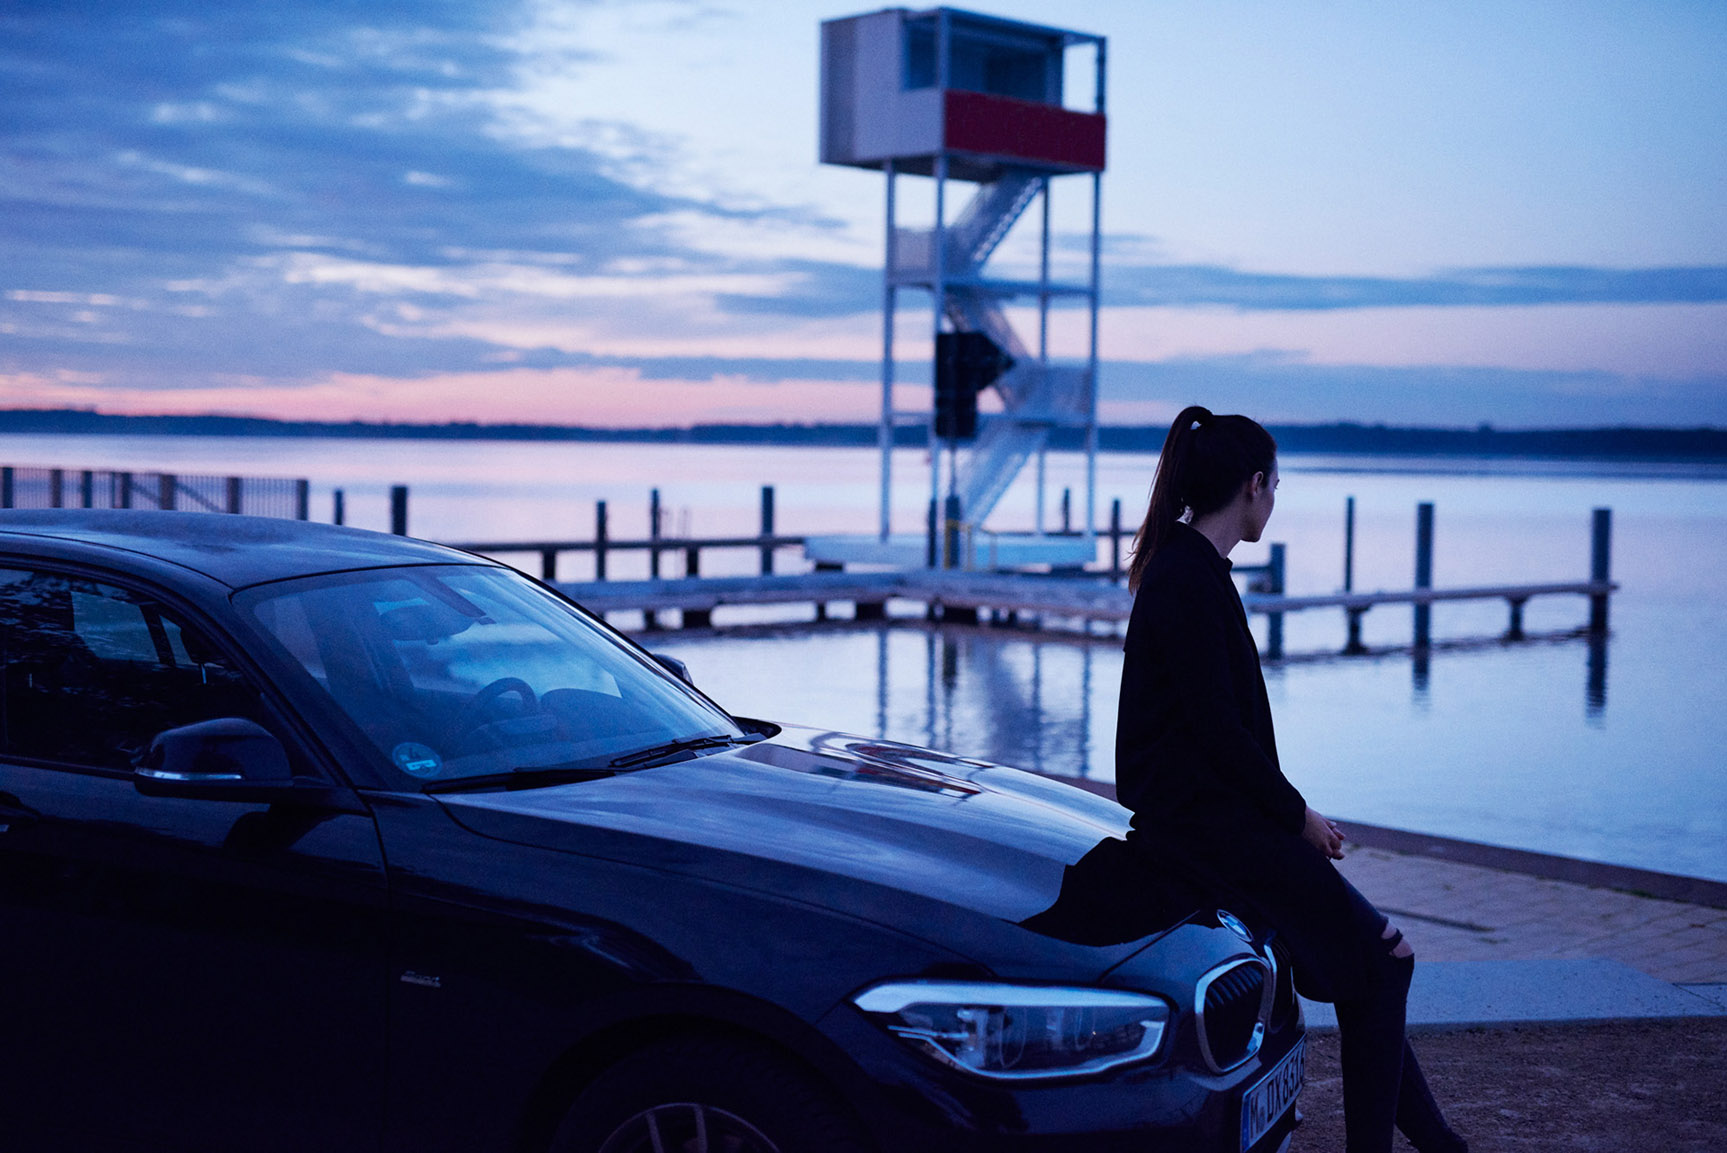 DriveNow BMW / Marilena and Shane Benson by Maximilian Motel